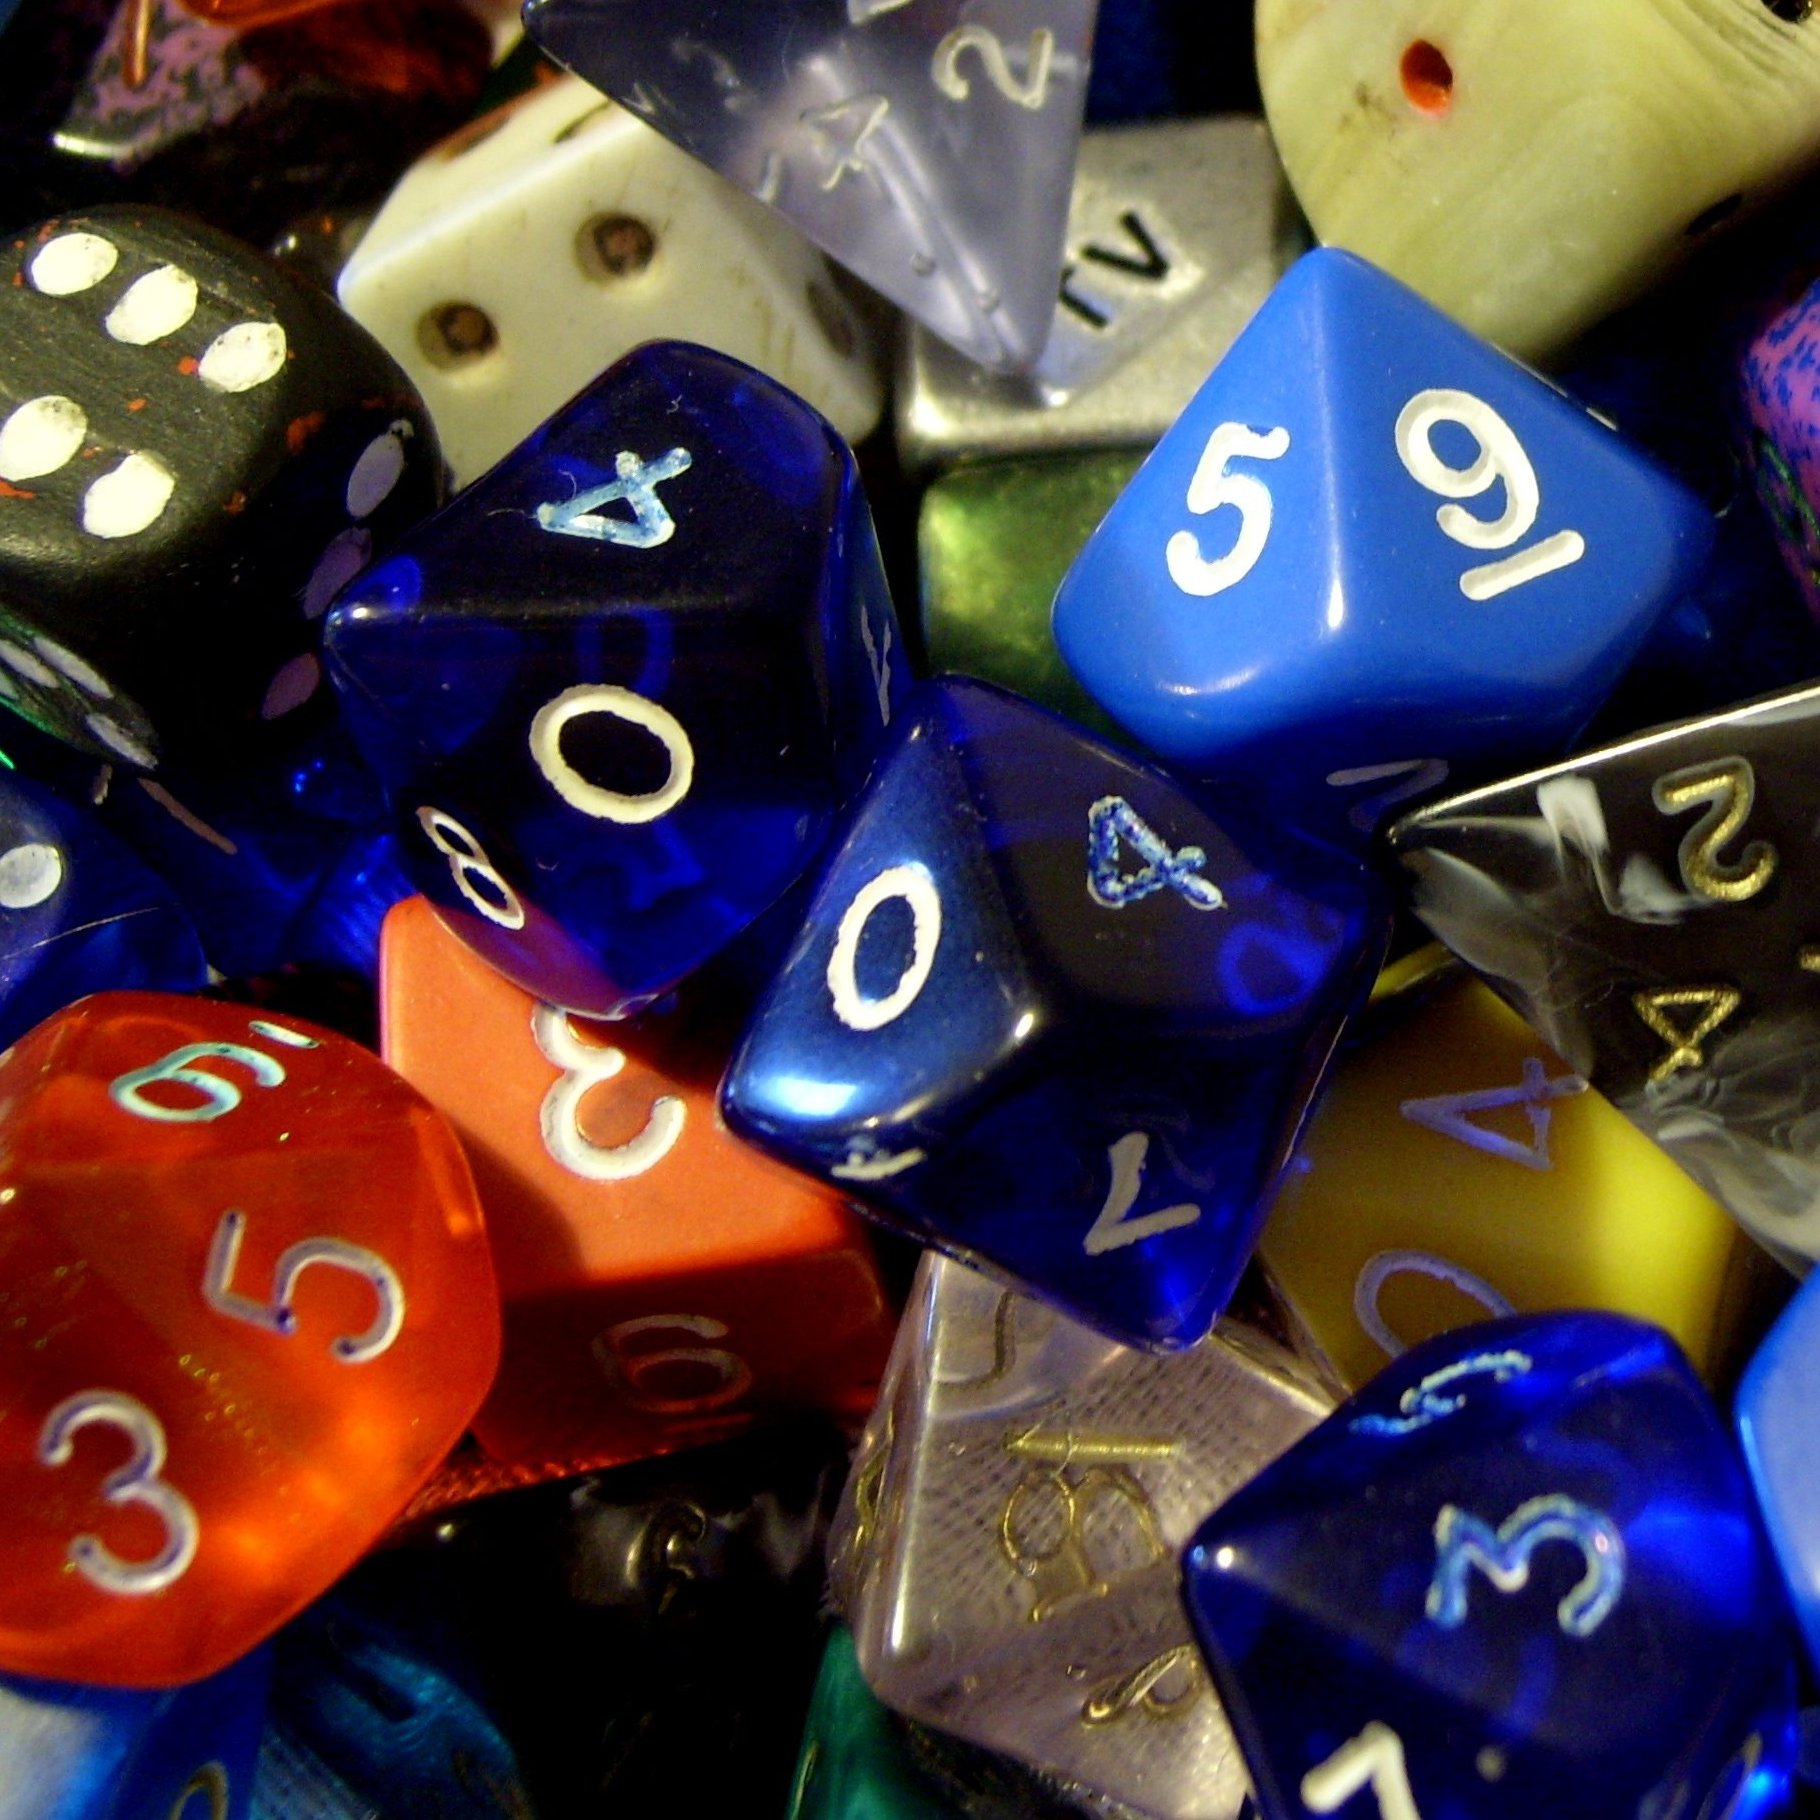 Whether or not you'll someday get cancer or any disease can feel like a roll of hundreds of dice.